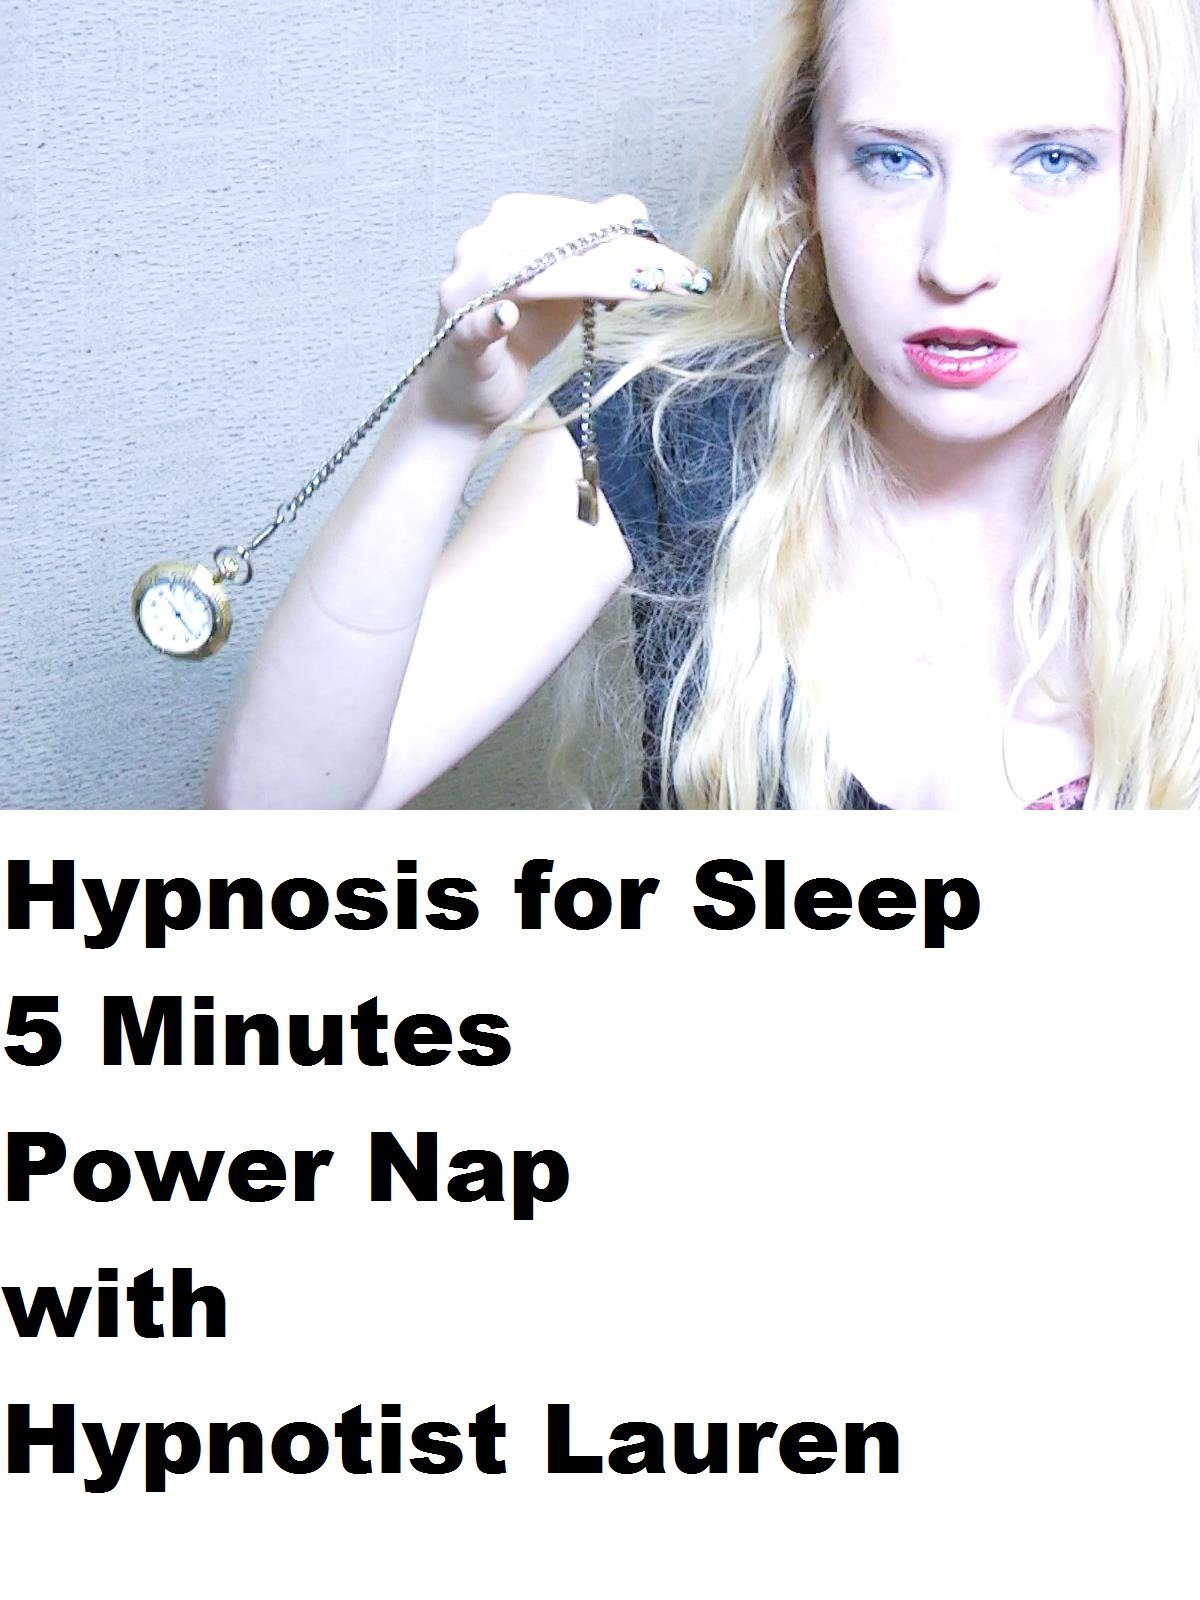 Clip: Hypnosis 5 minutes power nap